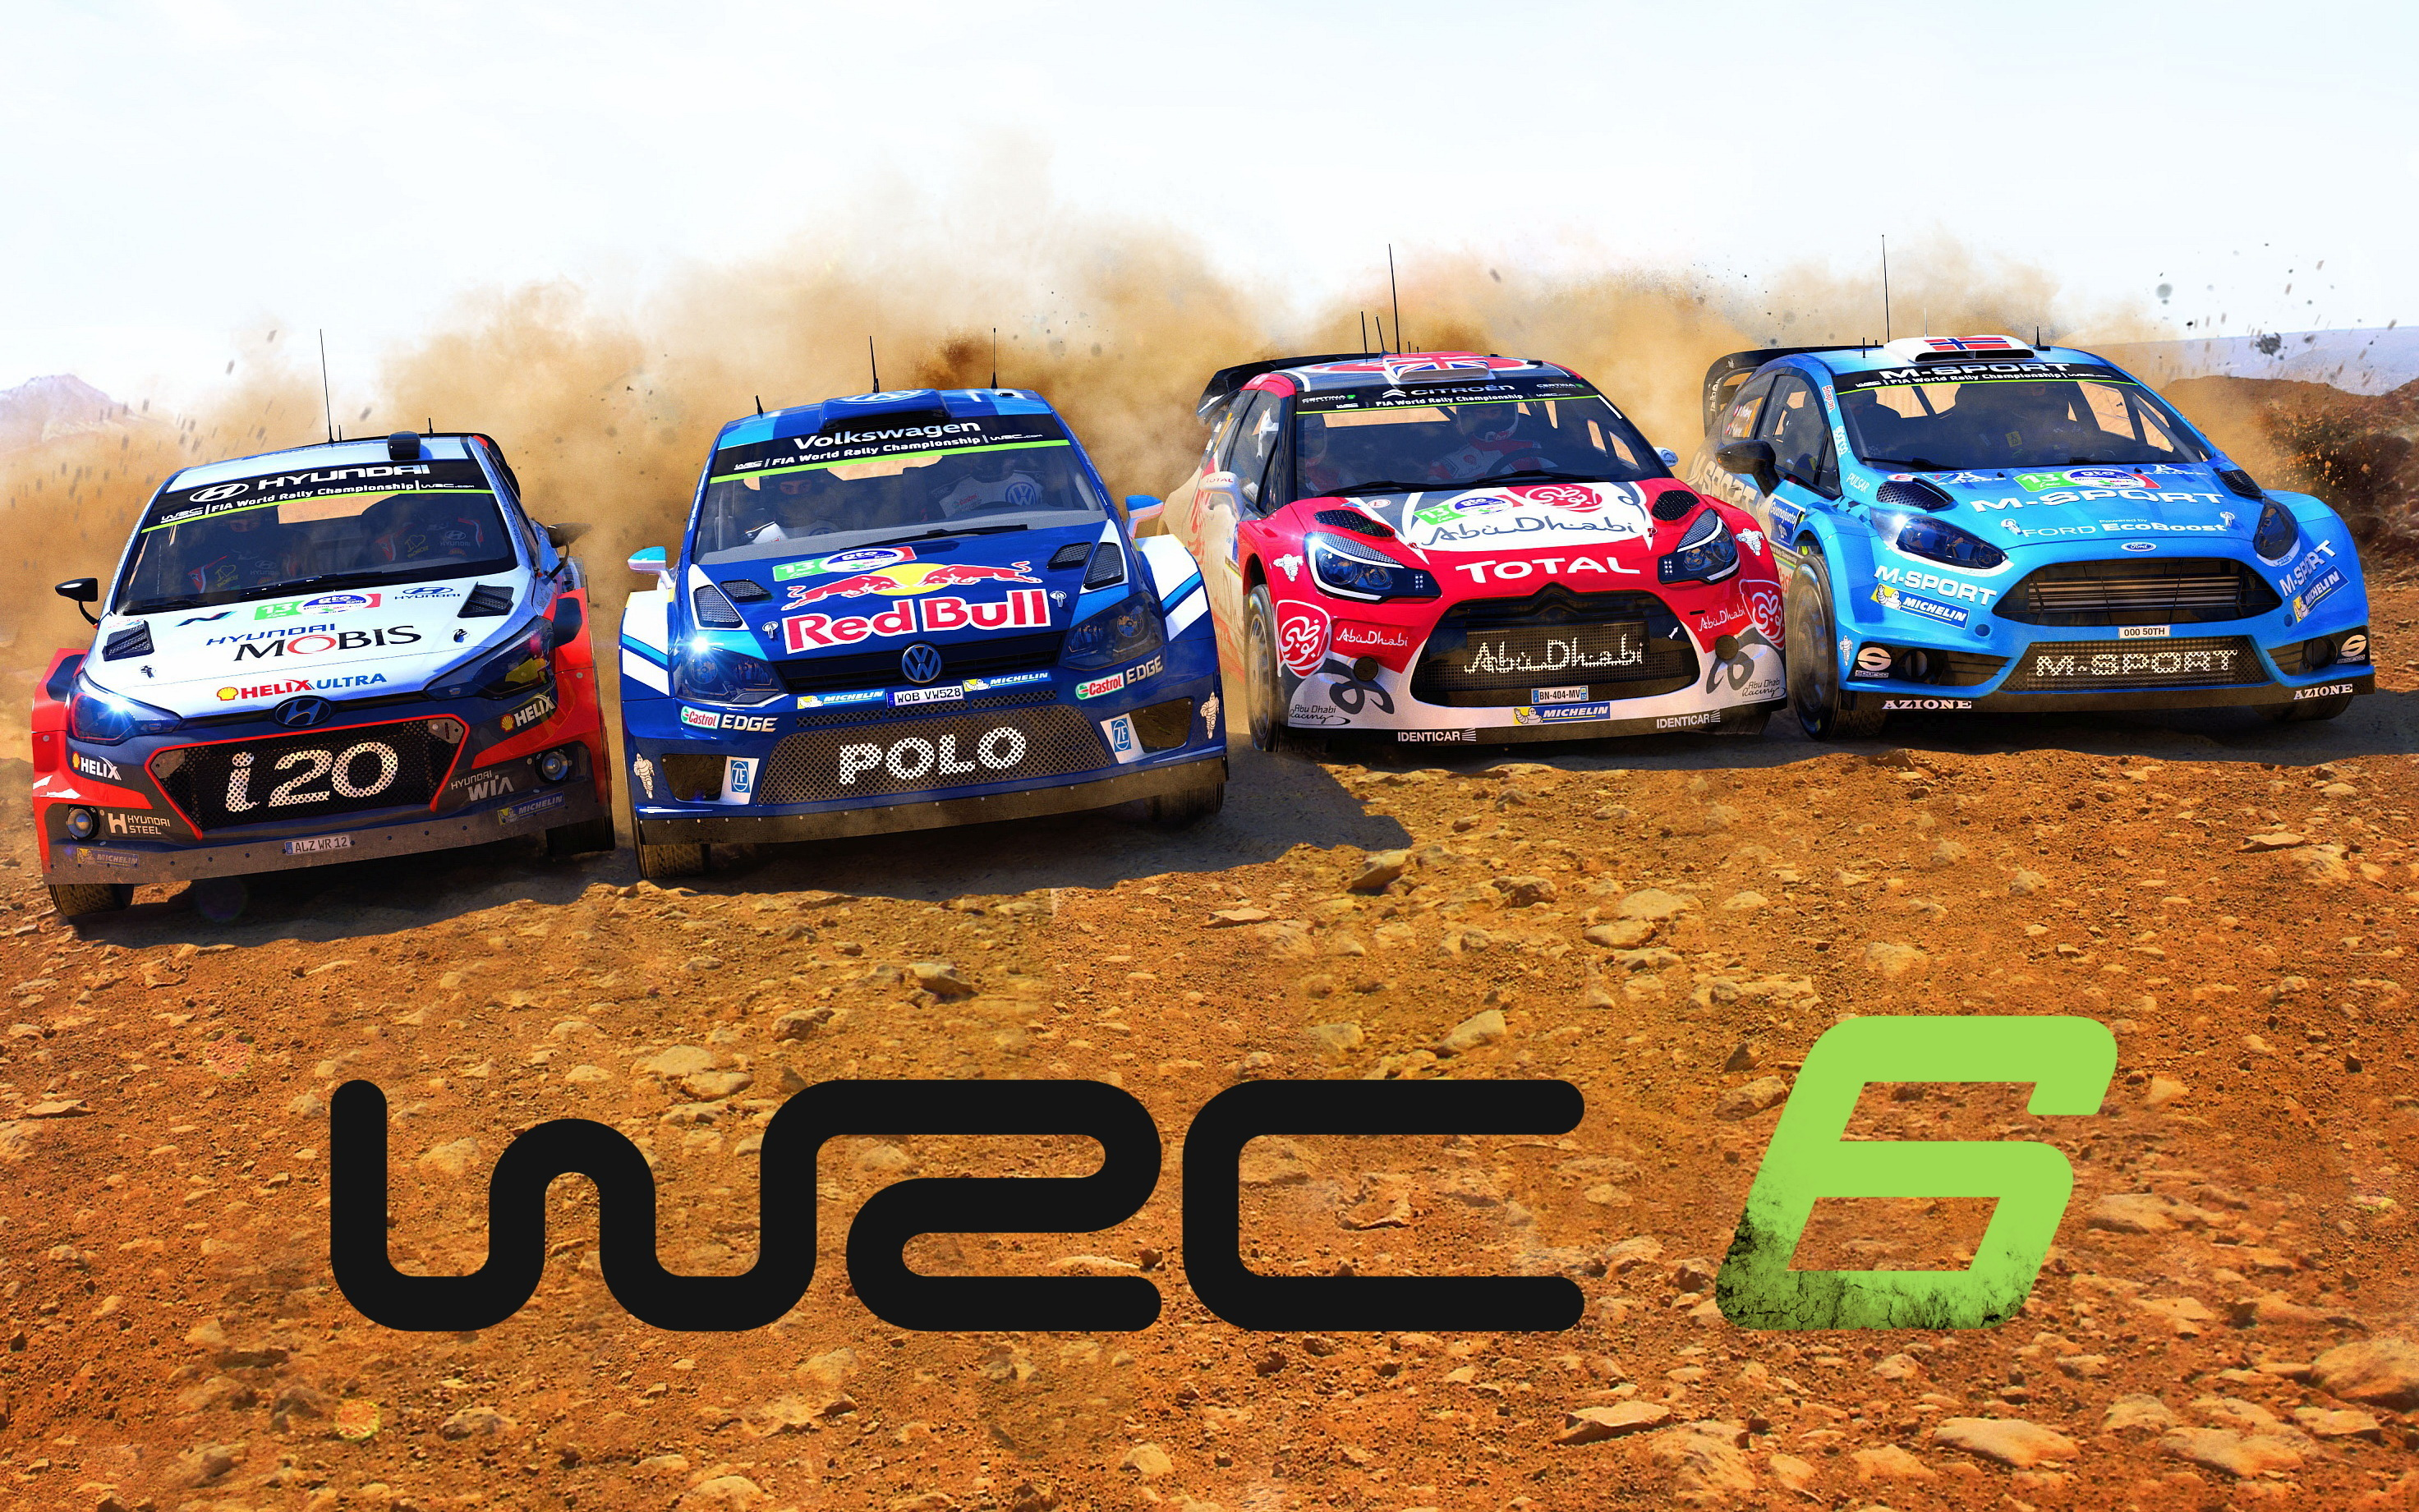 Games Wrc 6 Deluxe Edition Auf Steam News Sony Ps4 Fia World Rally Championship